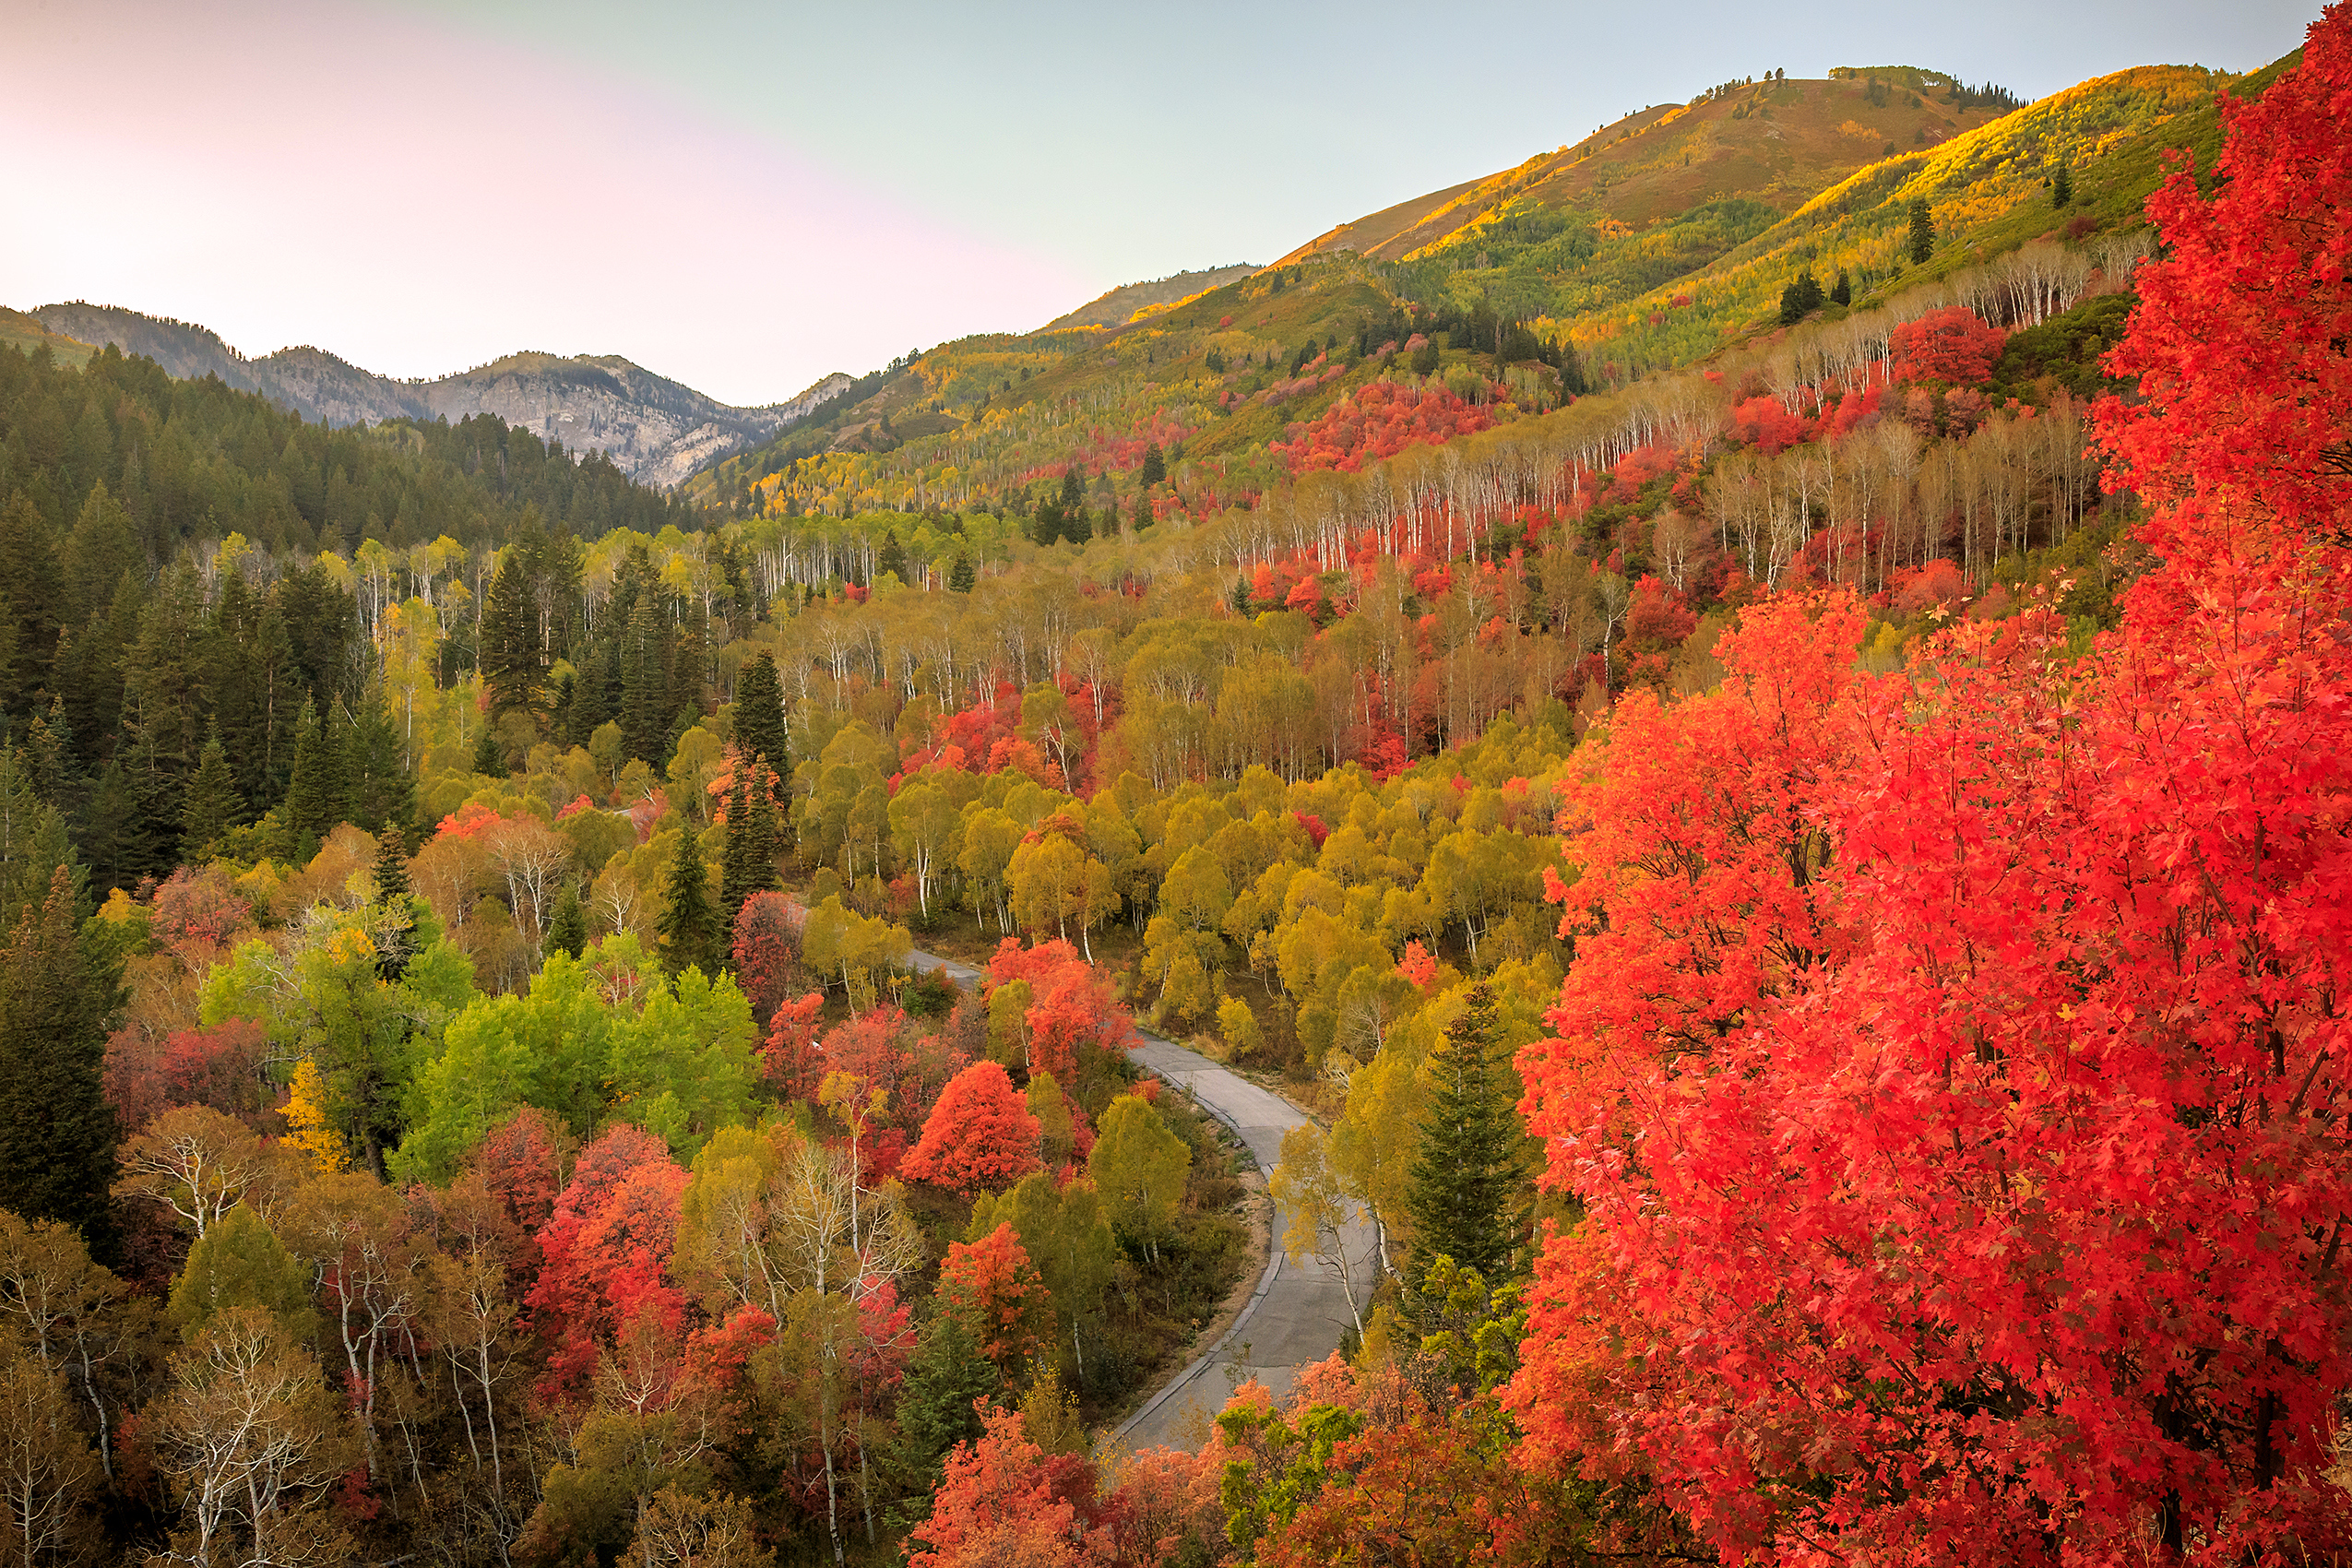 Fall color above a road in Snake Creek Canyon, Utah, USA.